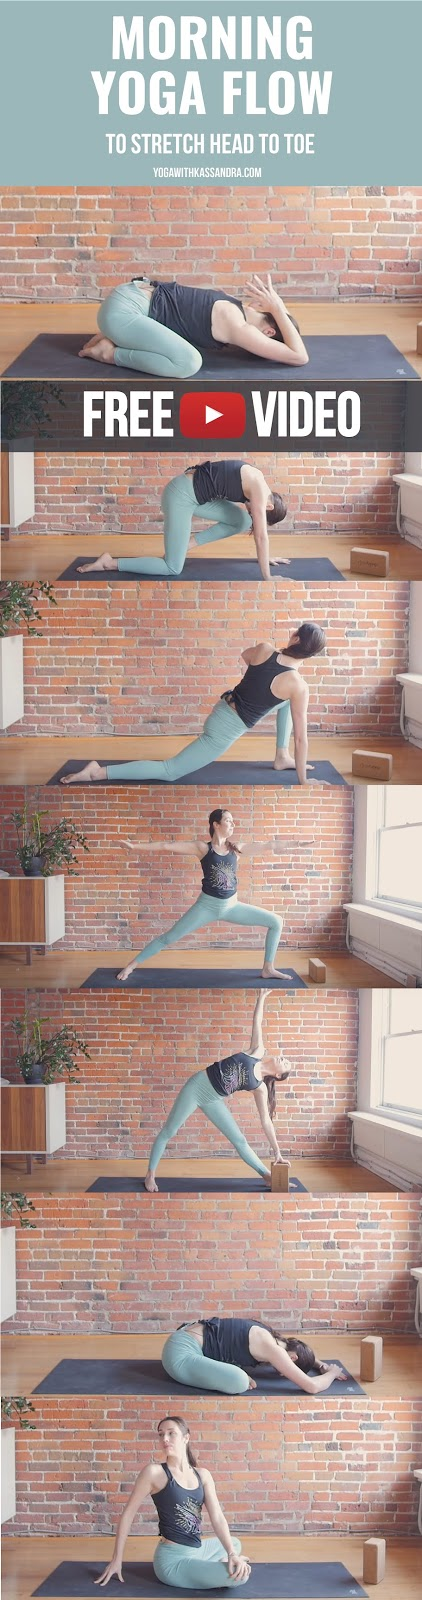 Your body loves a good stretch first thing in the morning! I can't say enough how big of an improvement I notice when I make time at the start of the day for 5-10 minutes of mobility on my mat.